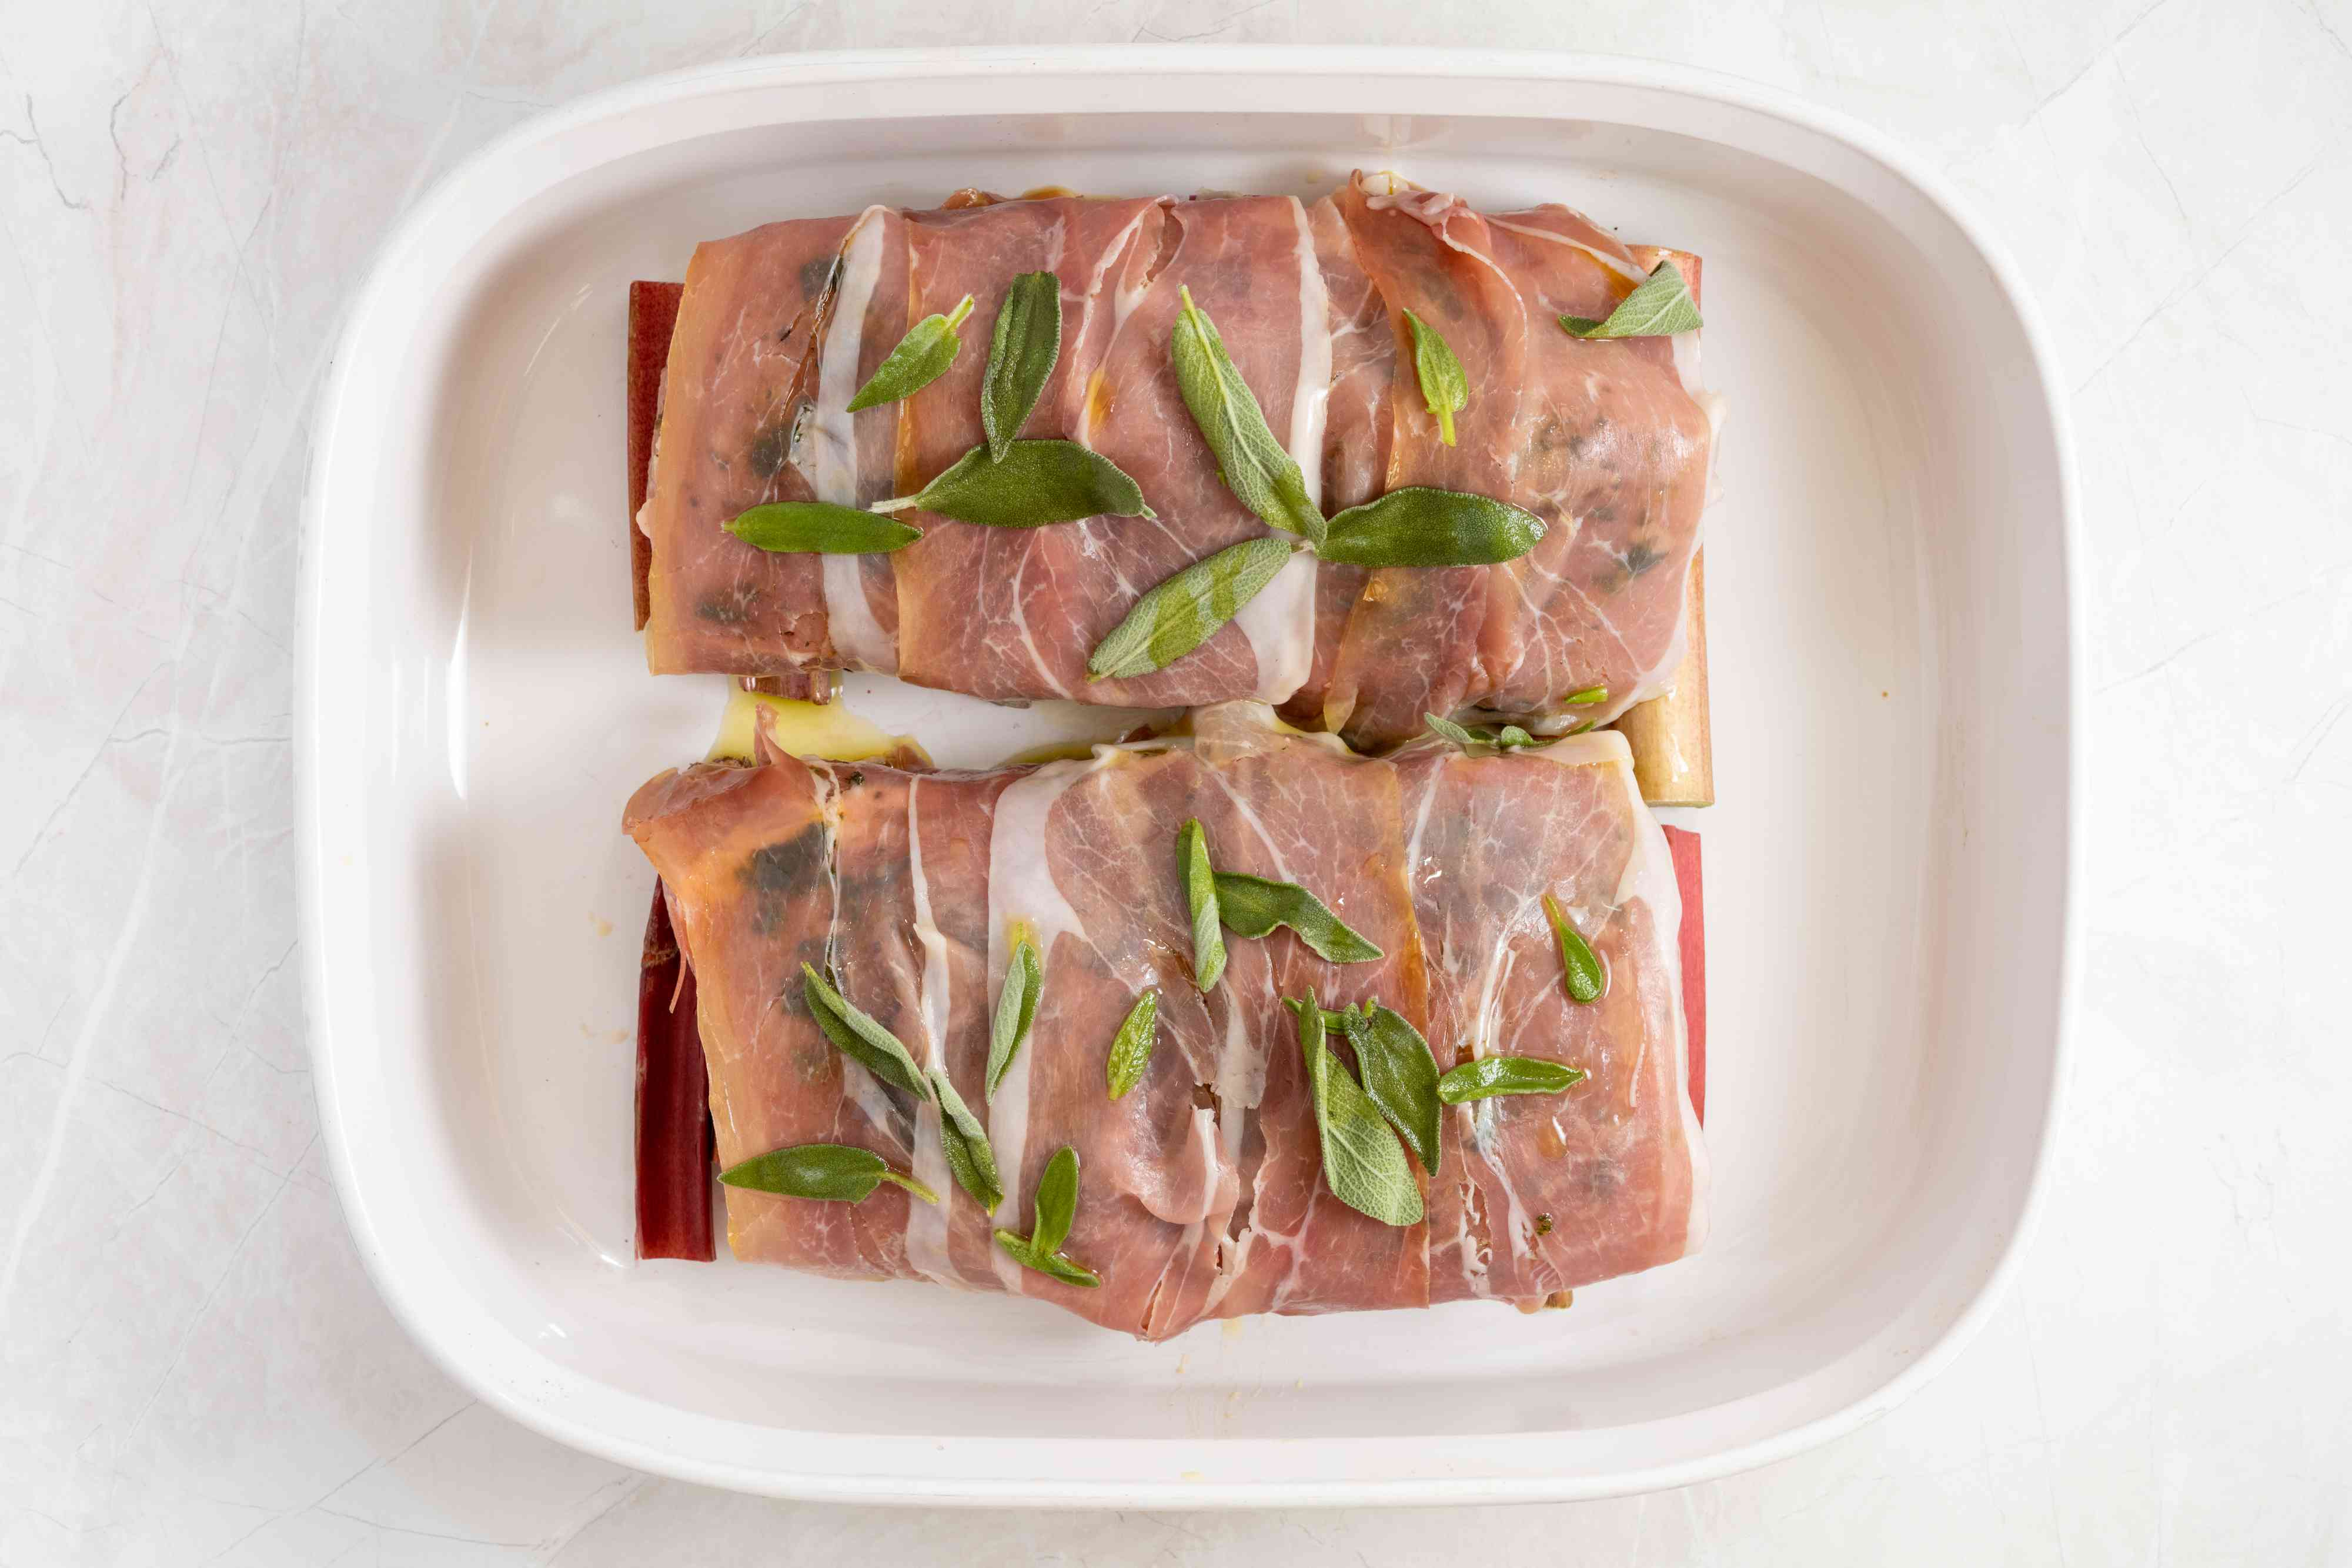 prosciutto wrapped pork in a baking dish, sprinkled with sage